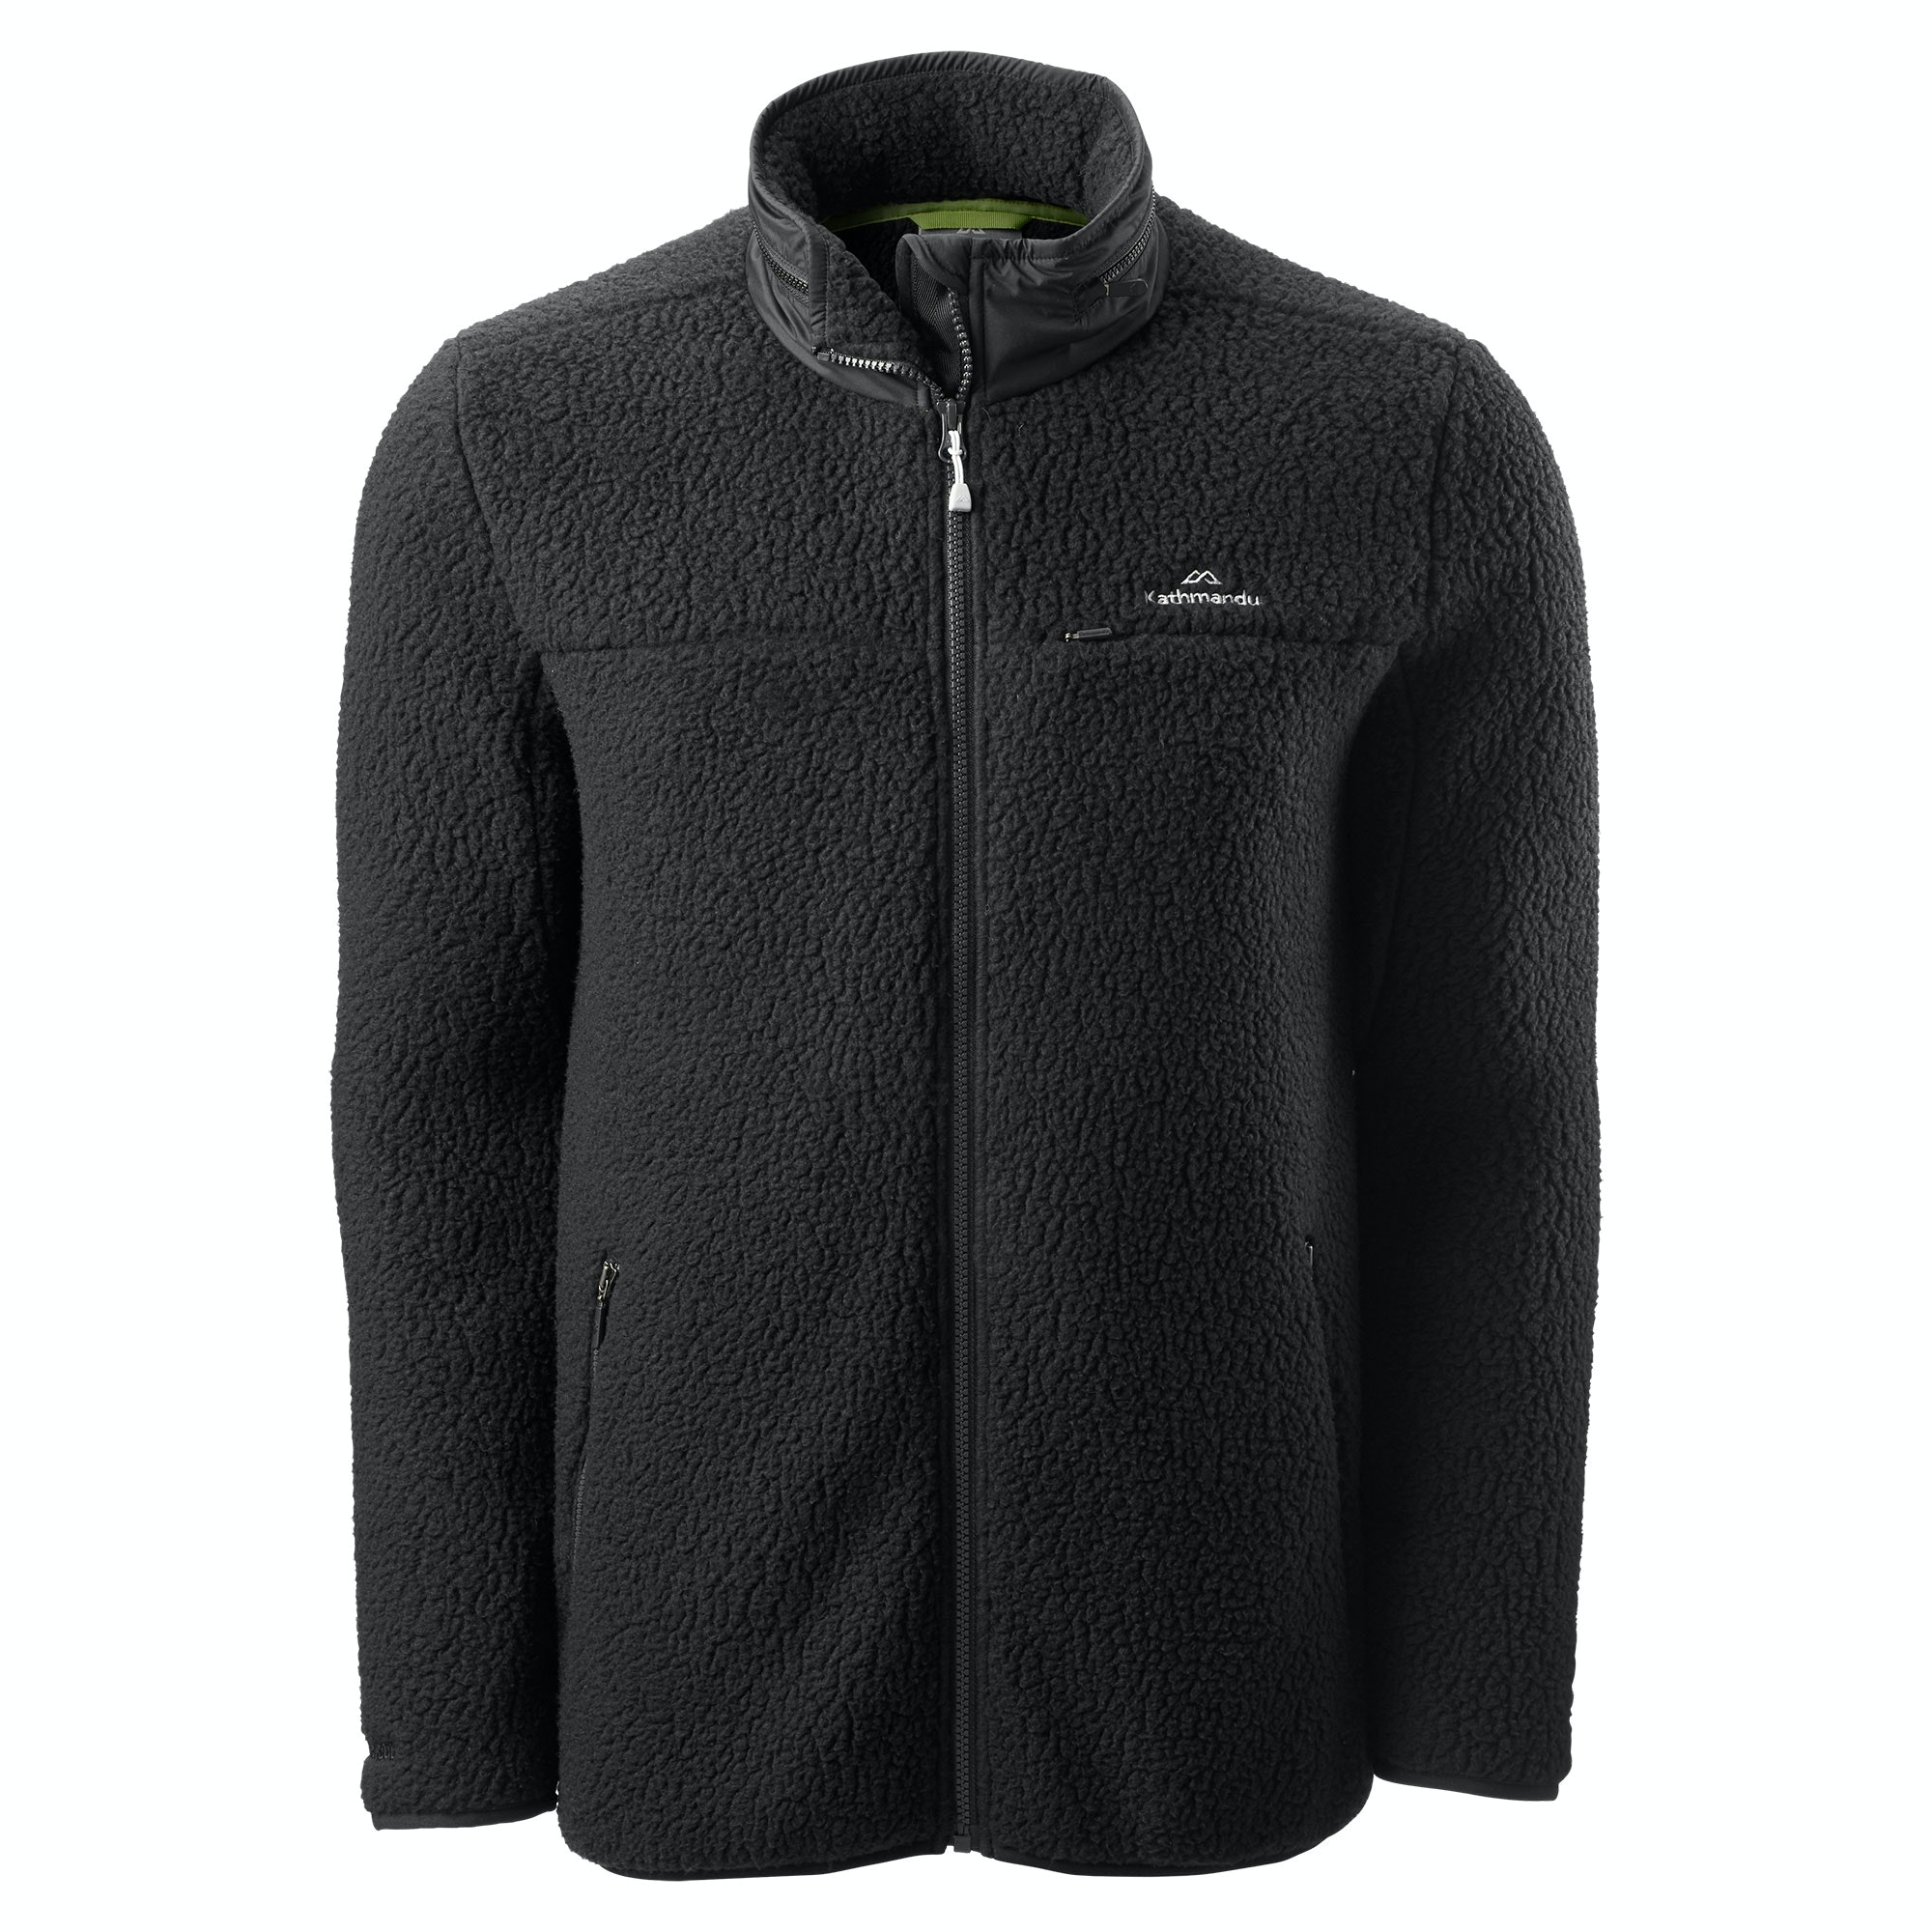 Baffin Island Men's Jacket